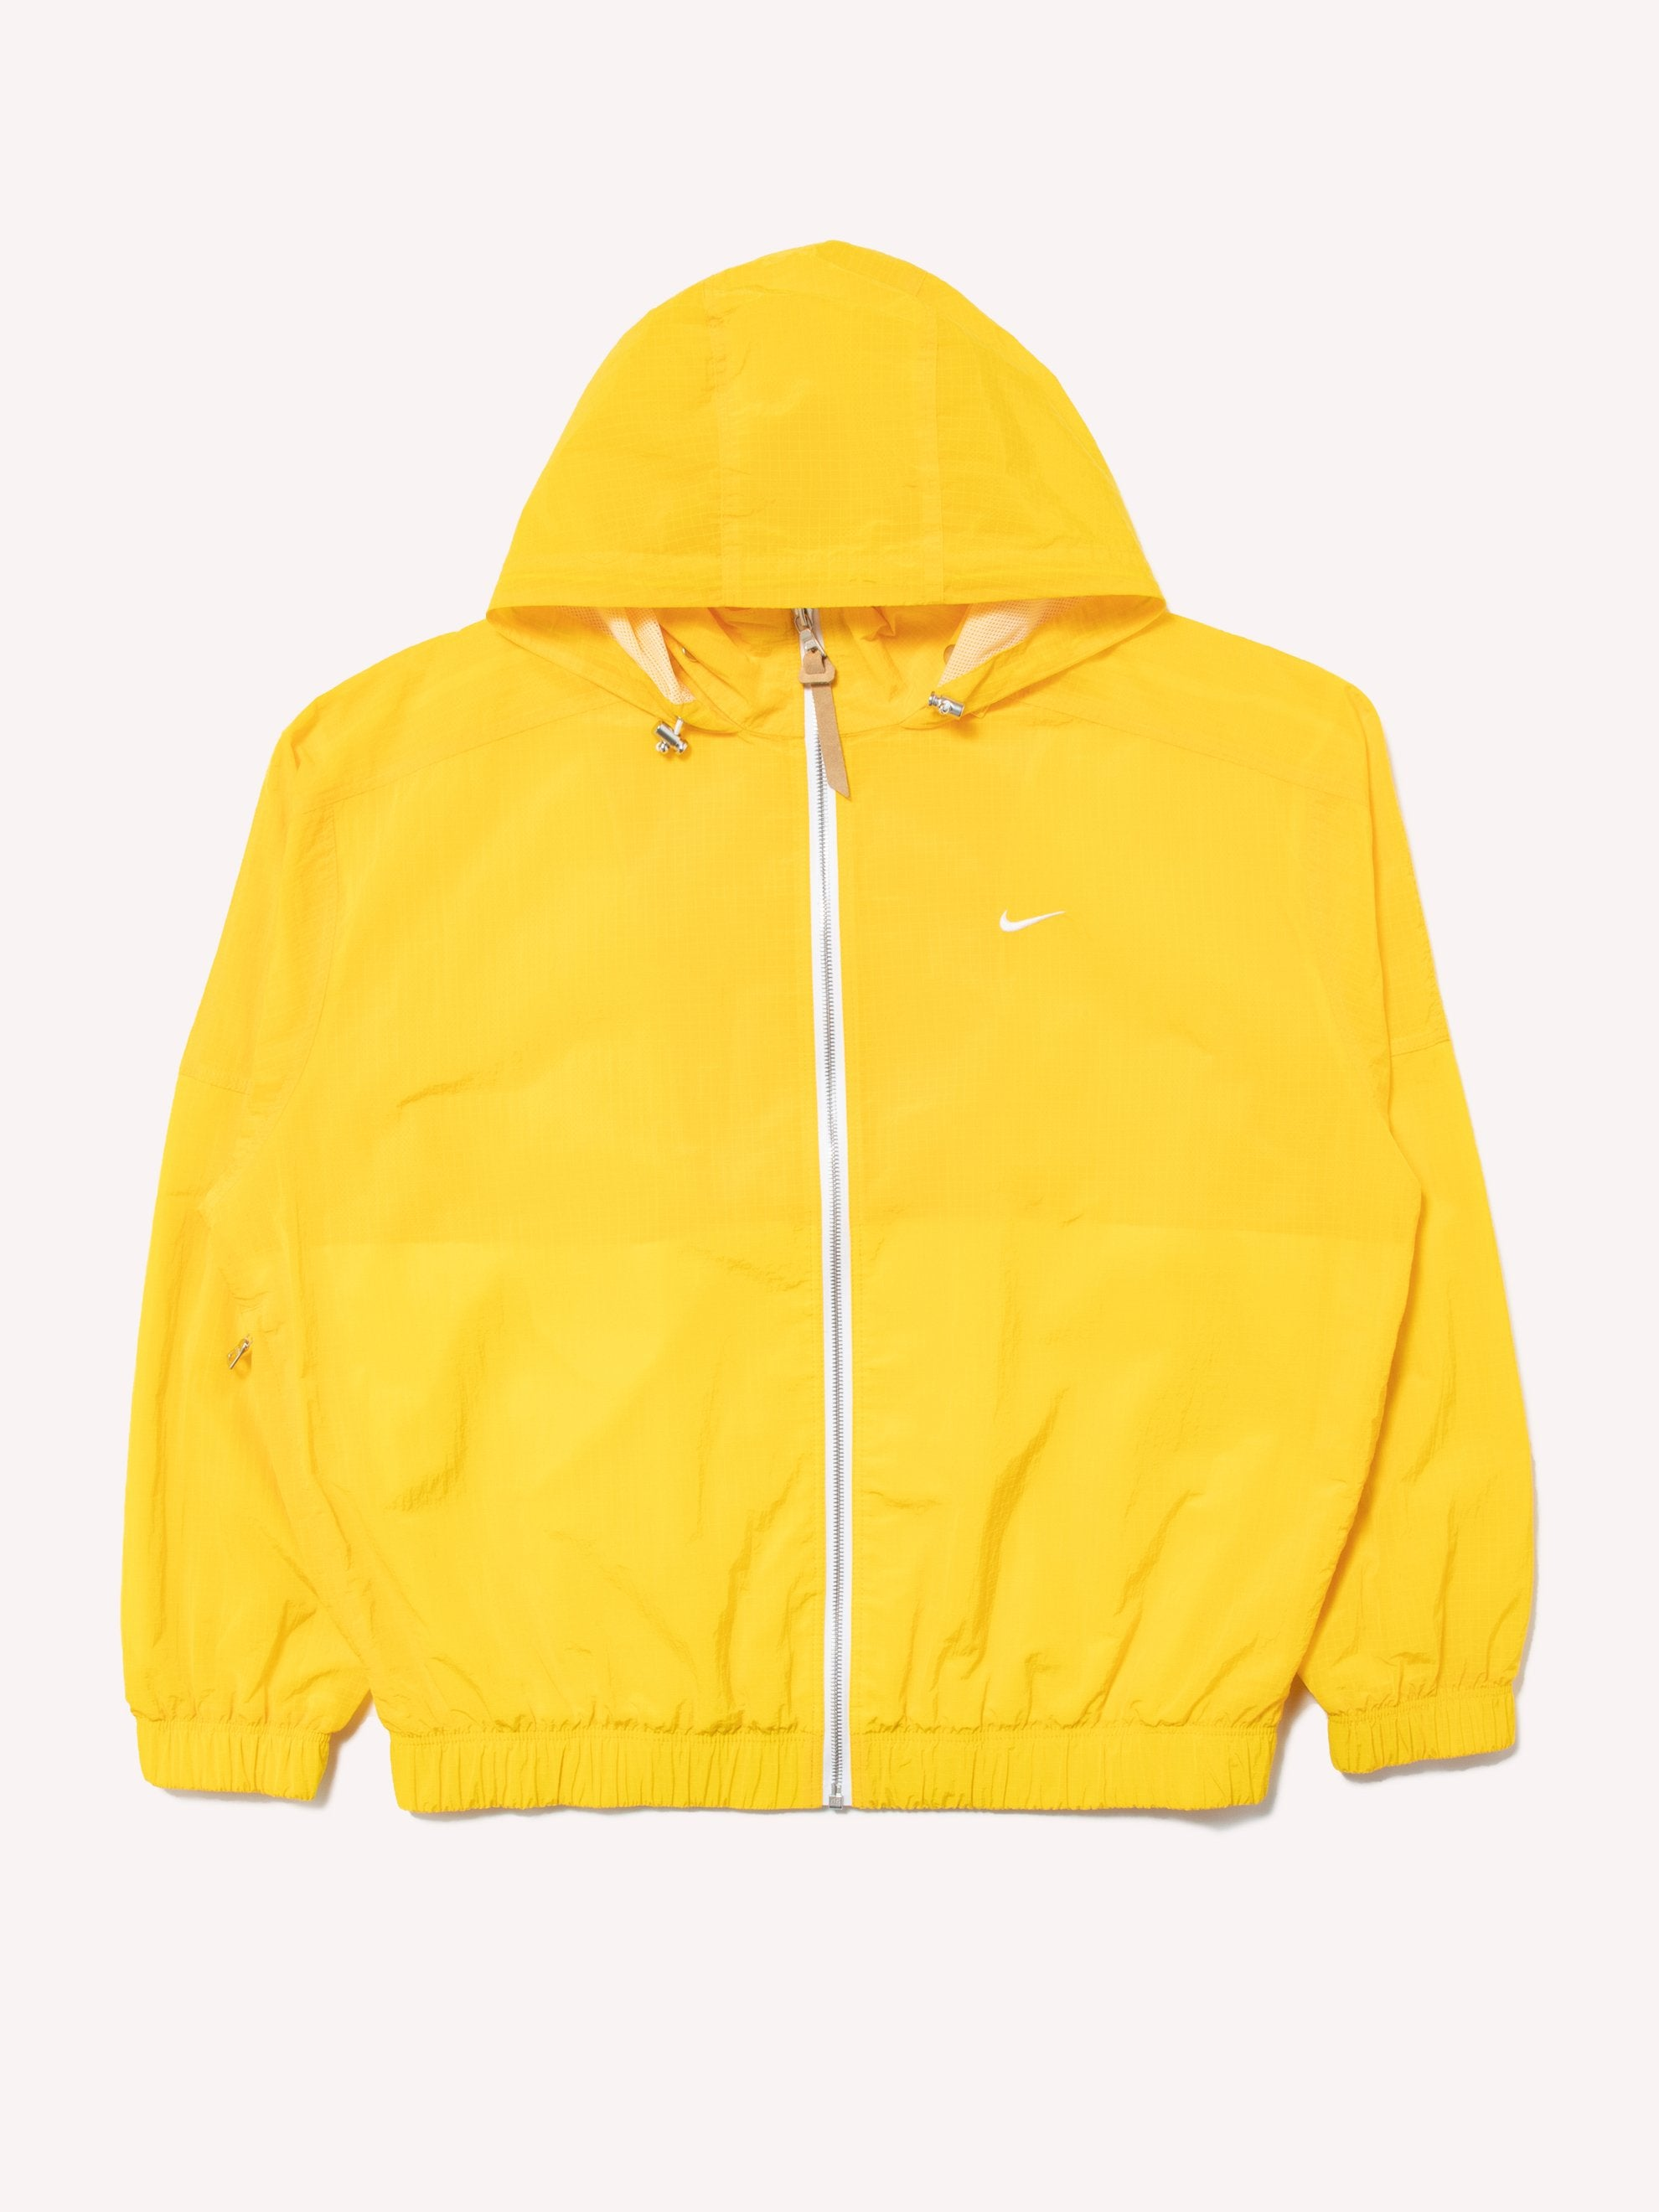 Opti Yellow Nike Made In Italy Track Jacket 1